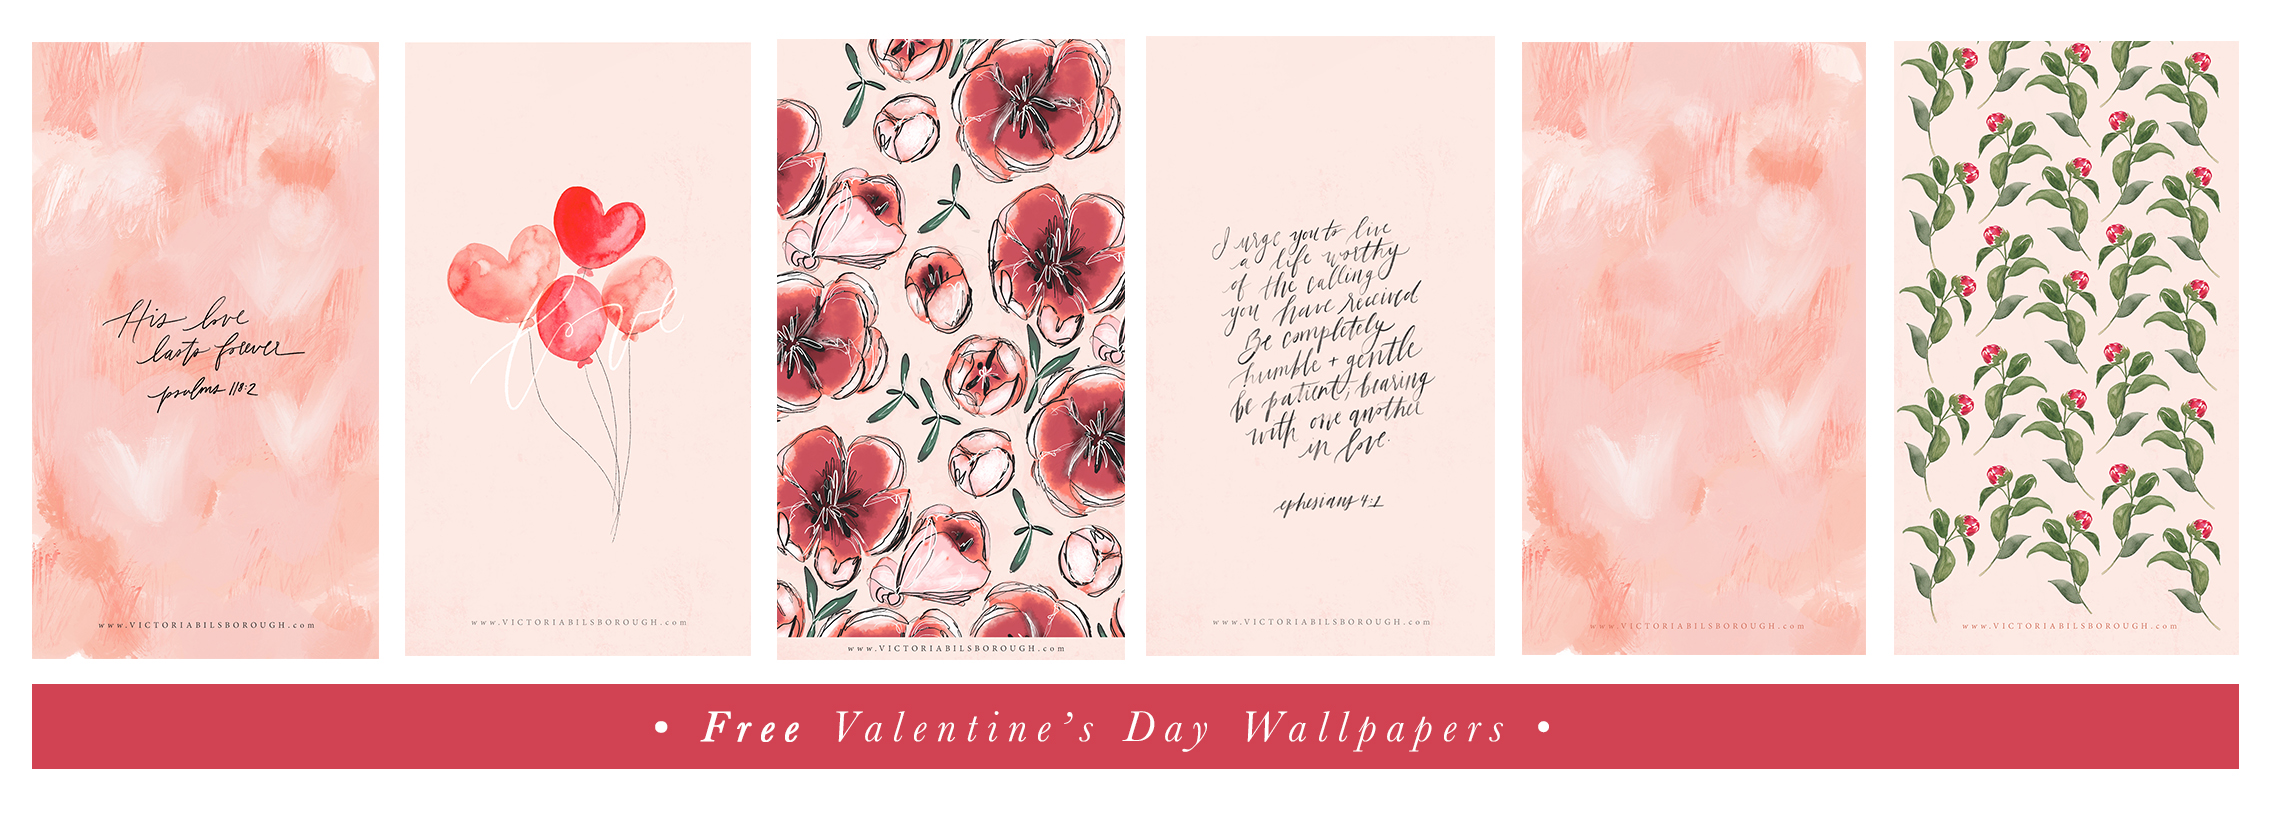 Free Valentine's Day Wallpapers | www.victoriabilsborough.com